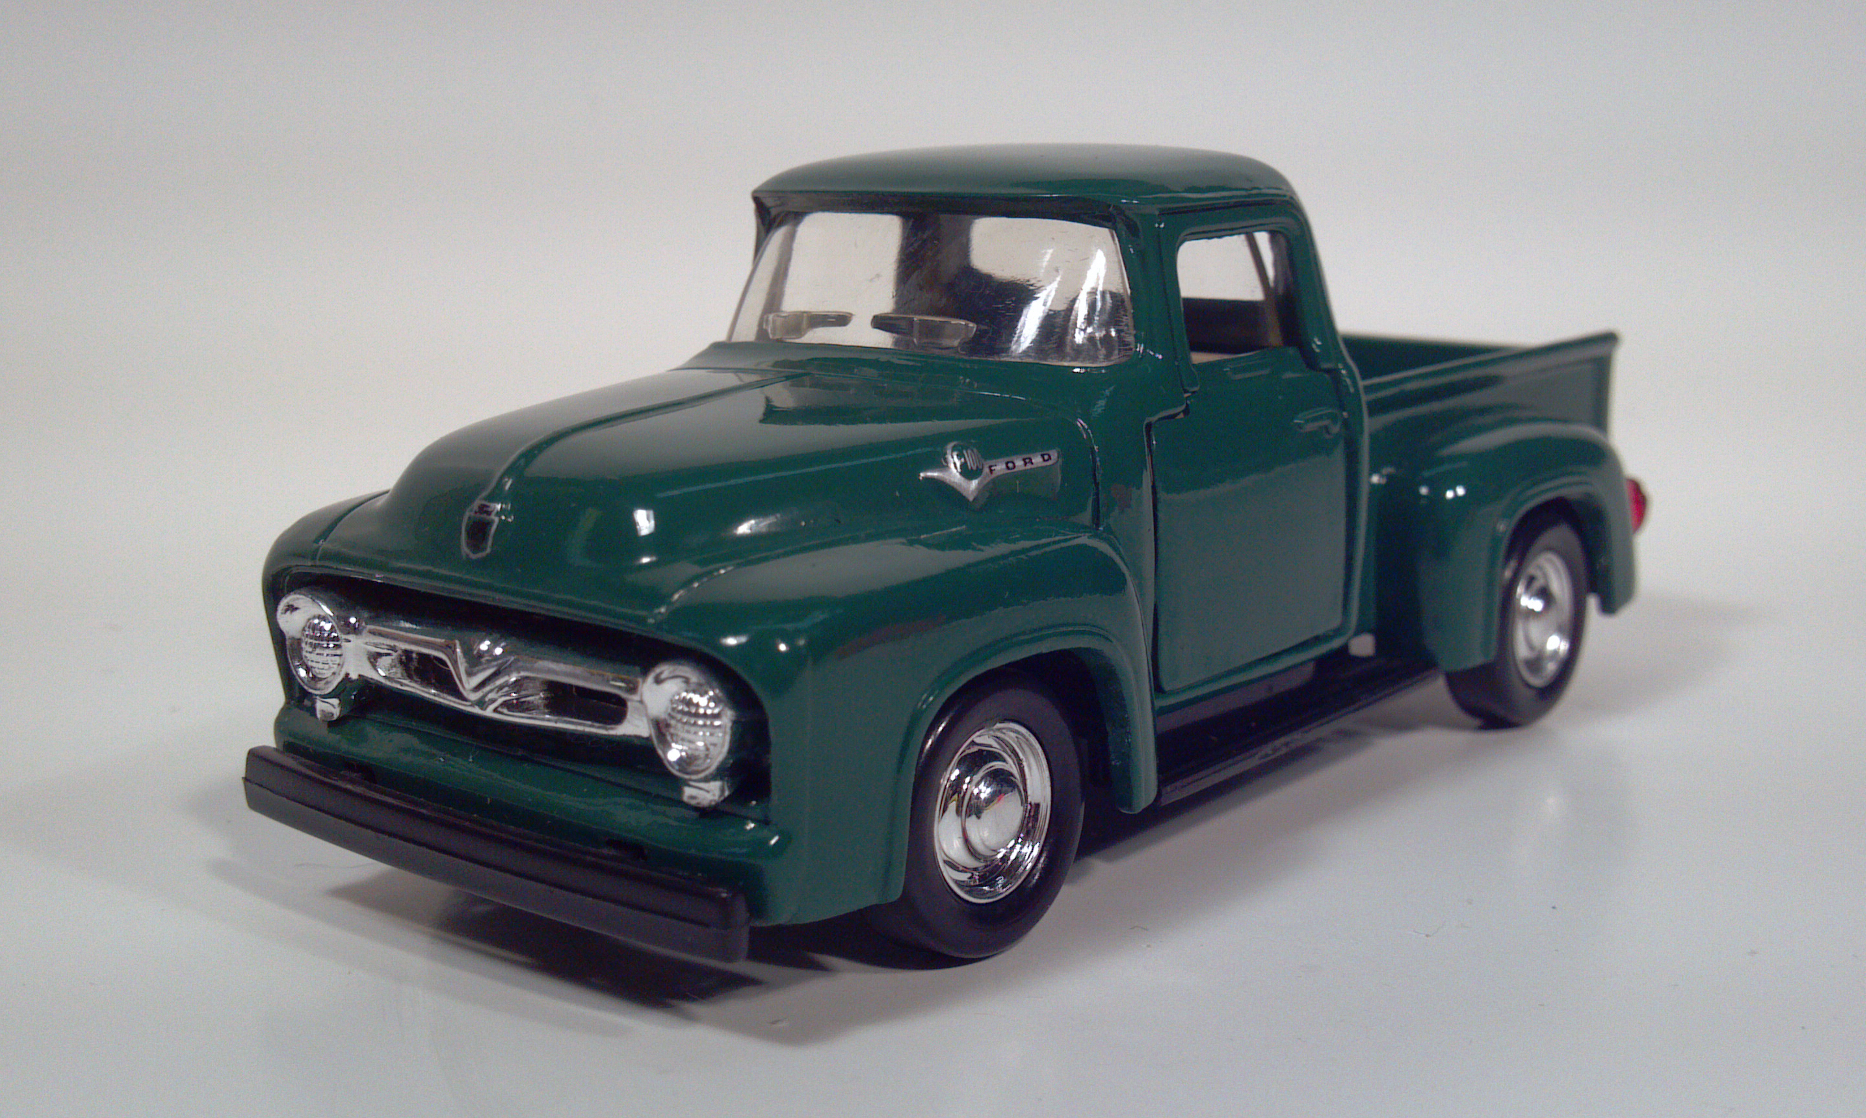 Diecast Toy Pickup Truck Scale Models 1949 Ford F1 Road Champs 1956 F100 143 Model